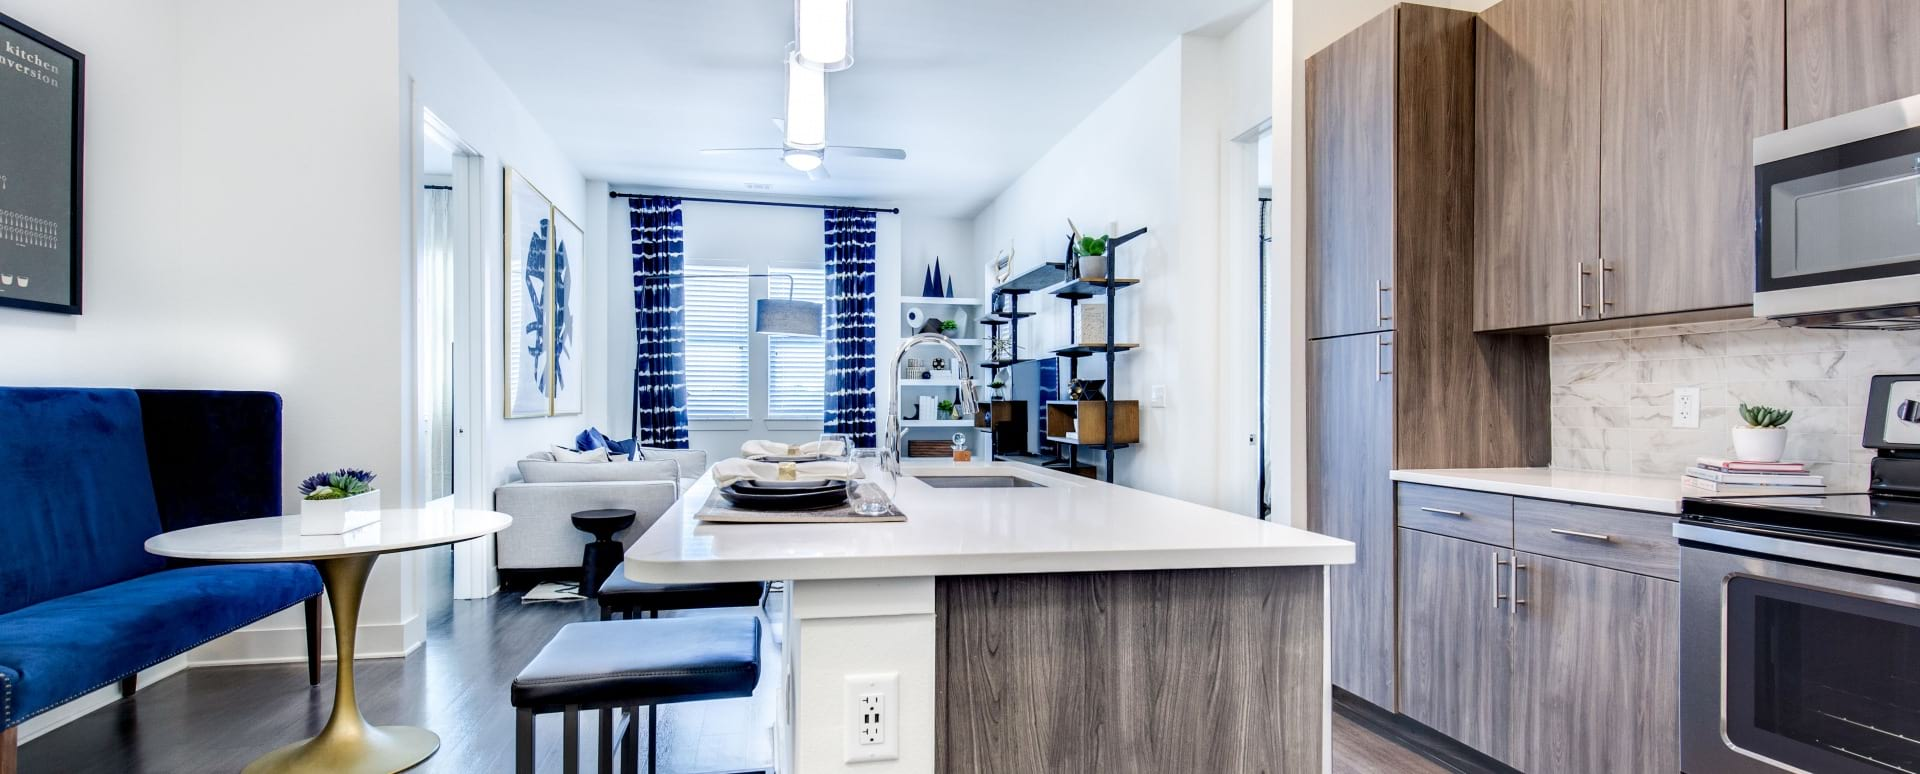 Luxury Apartment Kitchen at Our Lone Tree Apartments For Rent